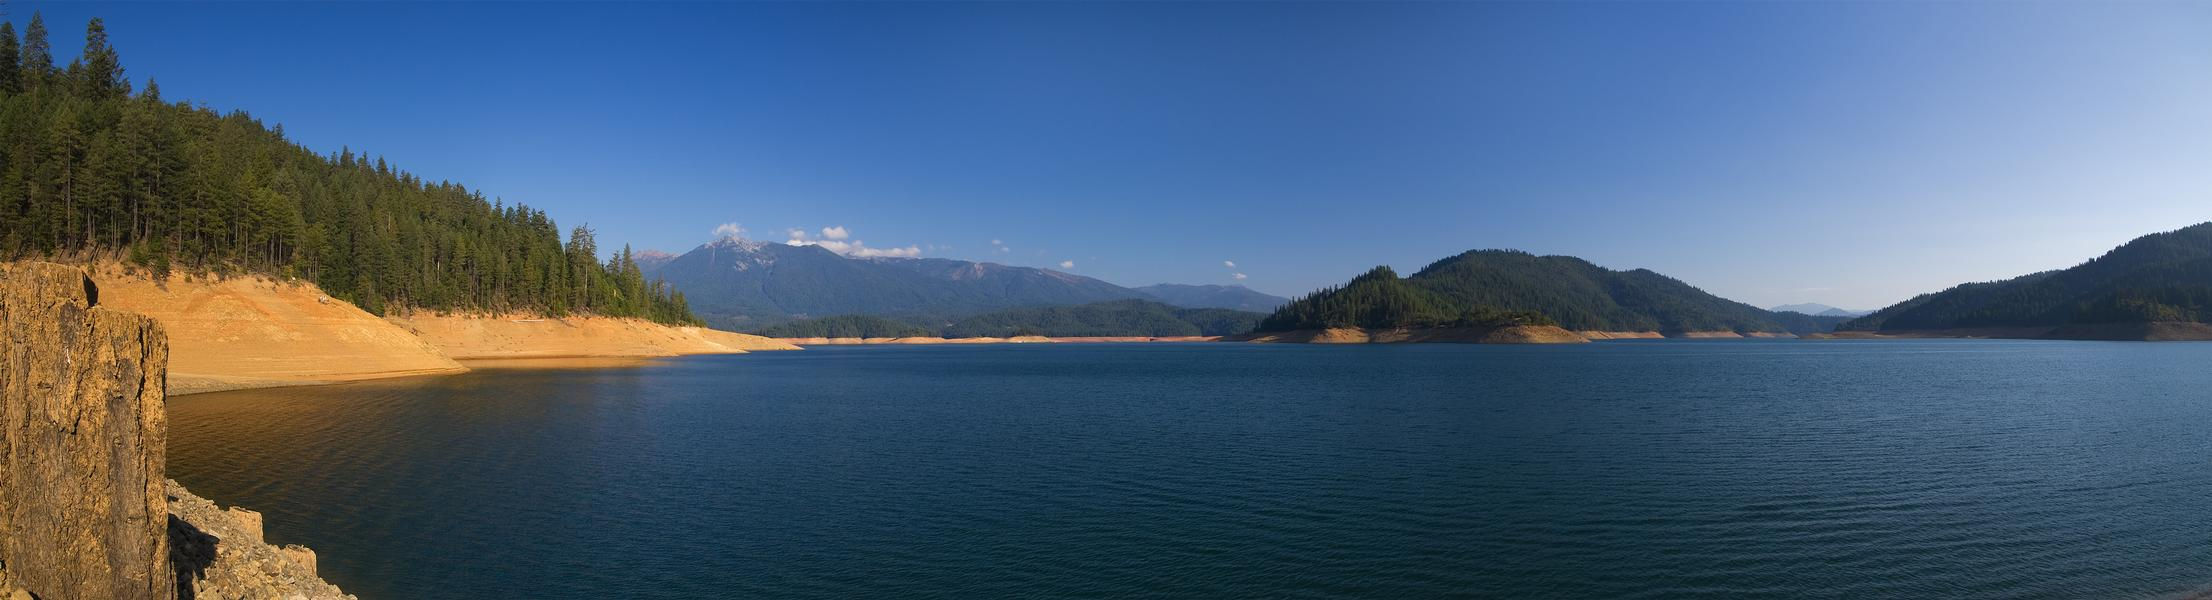 Trinity Lake is surrounded by lush forests and lined with beaches